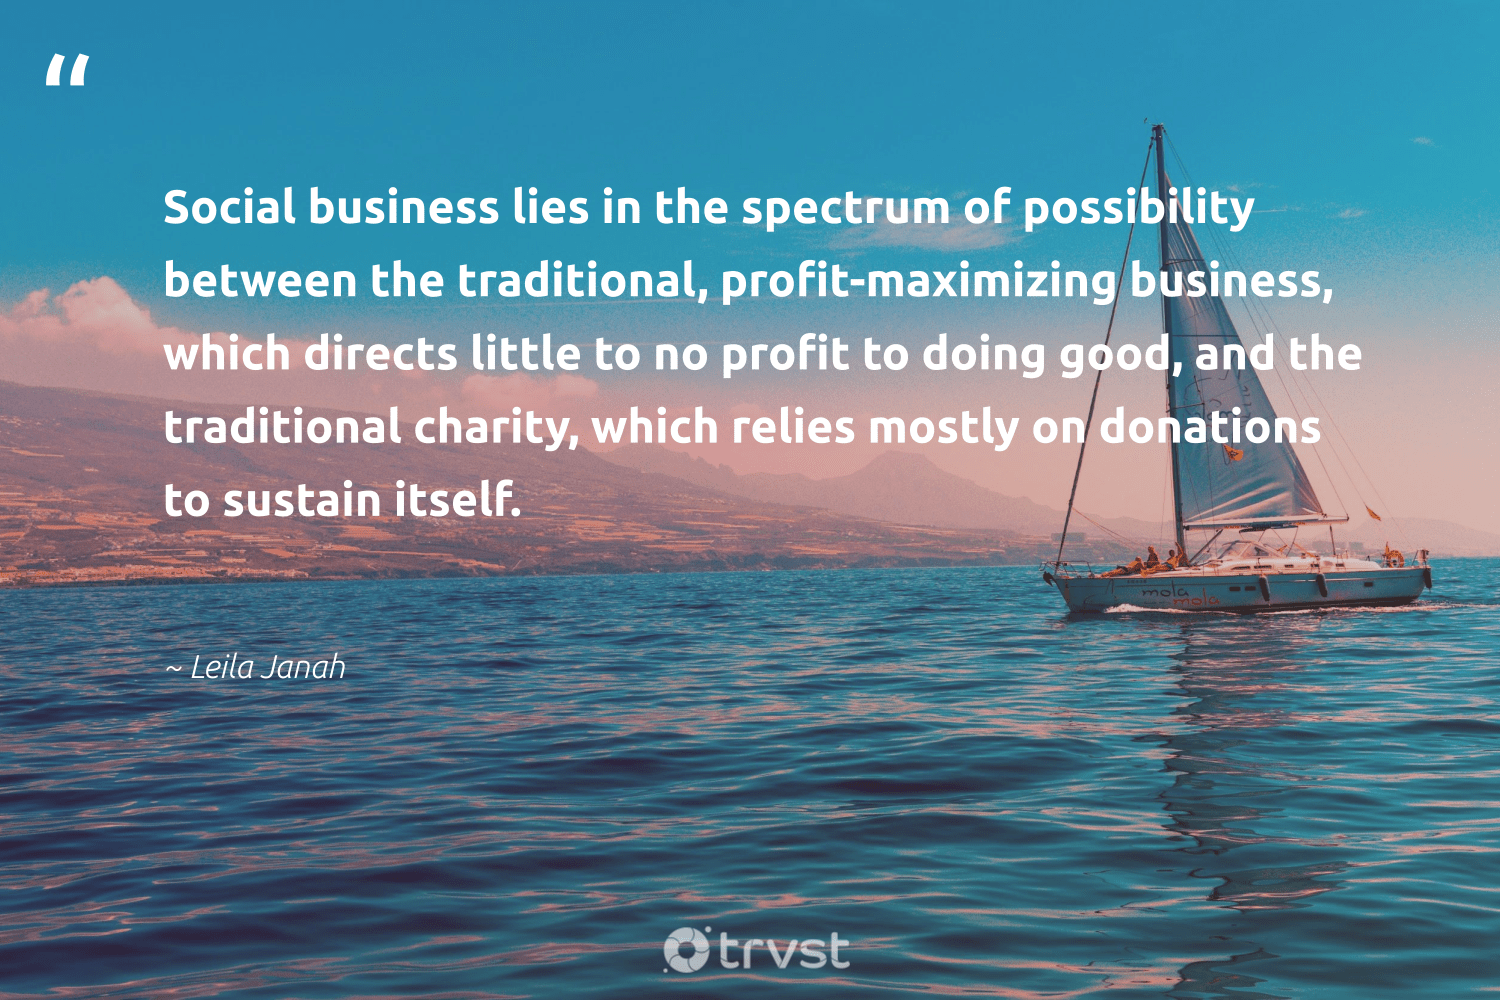 """Social business lies in the spectrum of possibility between the traditional, profit-maximizing business, which directs little to no profit to doing good, and the traditional charity, which relies mostly on donations to sustain itself.""  - Leila Janah #trvst #quotes #socialbusiness #ethicalcompany #makeadifference #giveback #takeaction #businessethics #ethicalbusiness #weareallone #gogreen #socialentrepreneur"